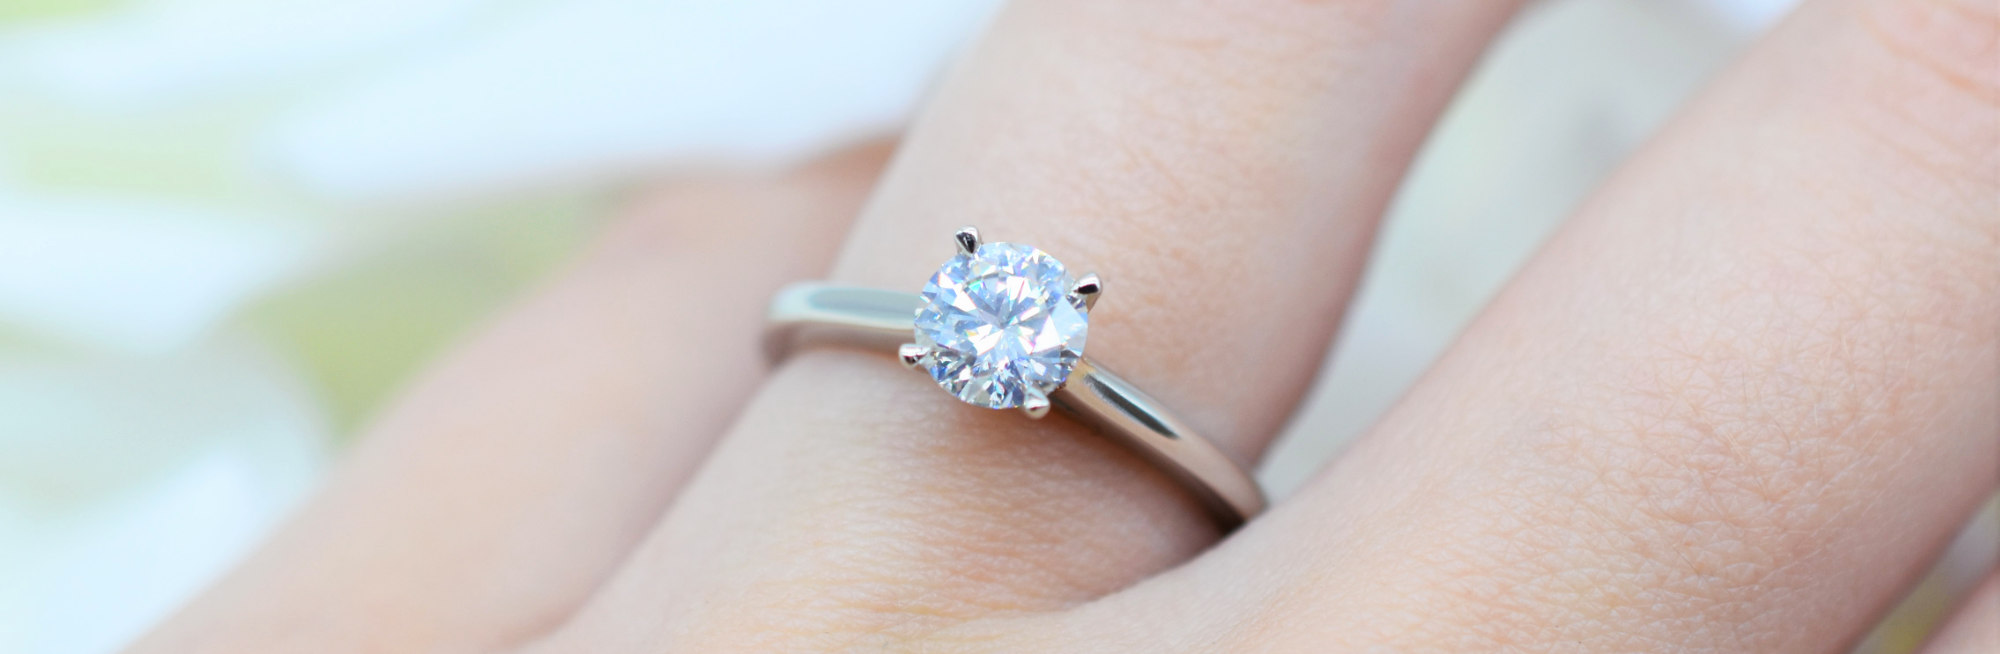 DM Jewellers will you marry me competition prize ring on finger